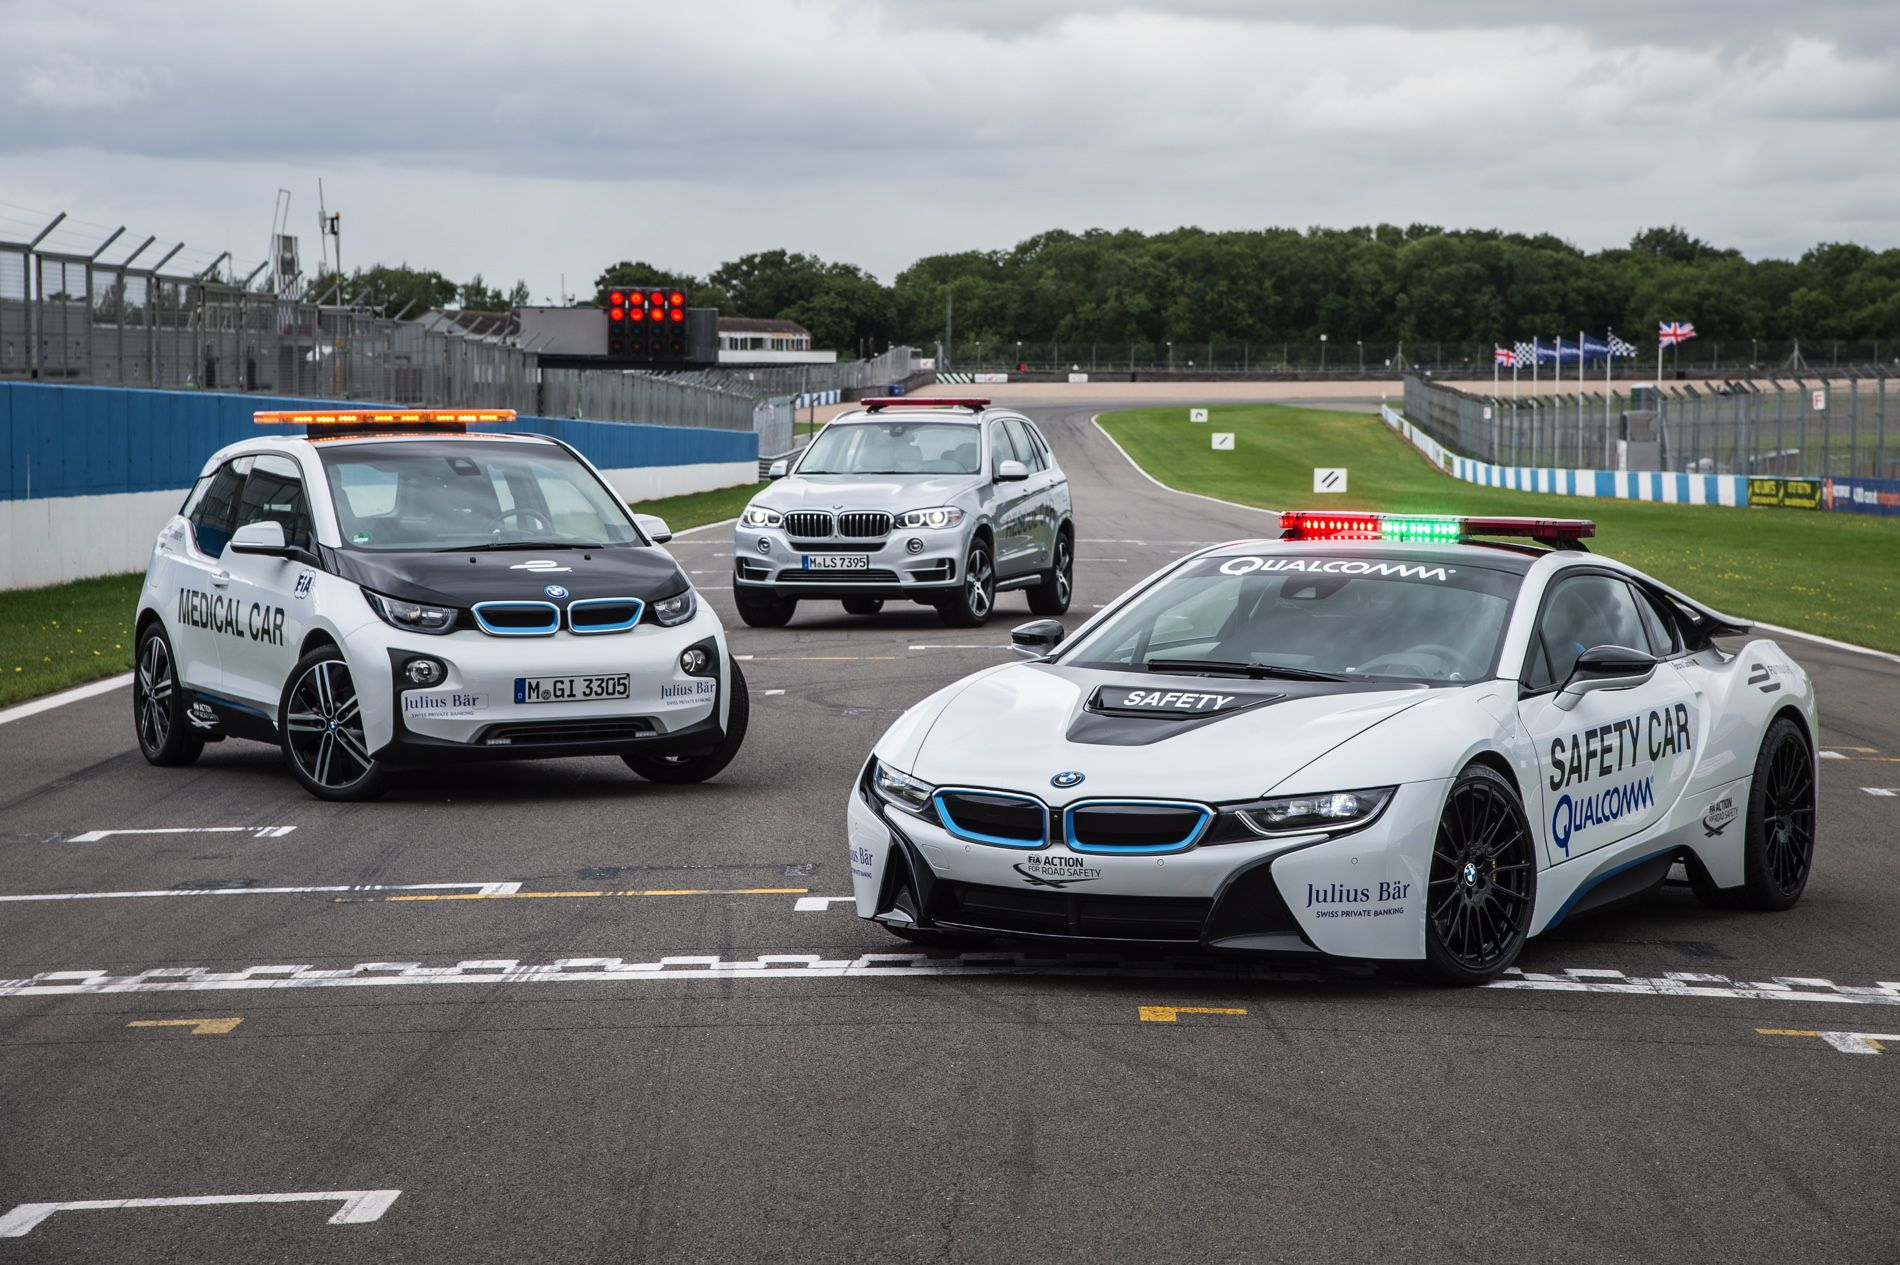 Pin By Teodoro On Bmw Pinterest Bmw Bmw I8 And Cars